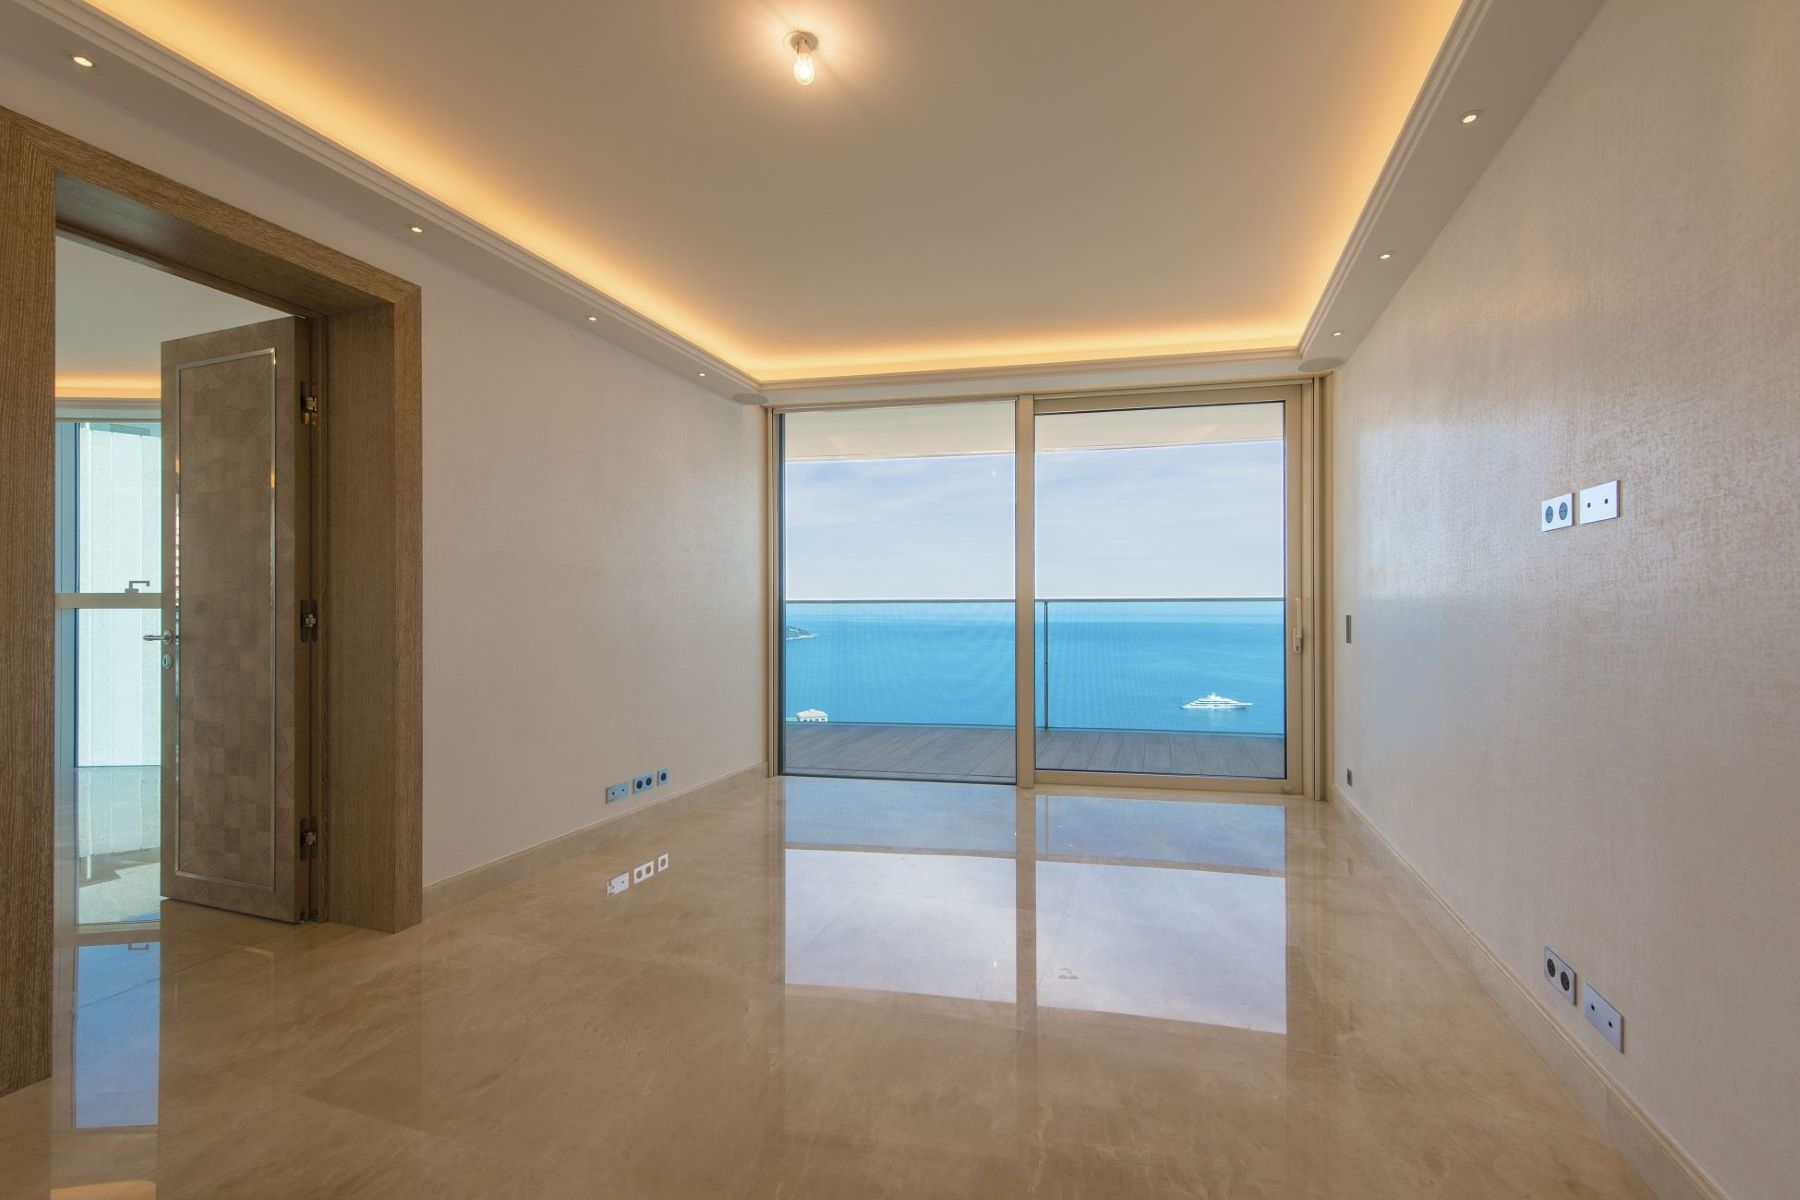 Apartamento por un Venta en Odeon Tower - Superb brand new apartment Tour Odéon 36 Avenue de l'Annonciade Monaco, La Condamine, 98000 Mónaco